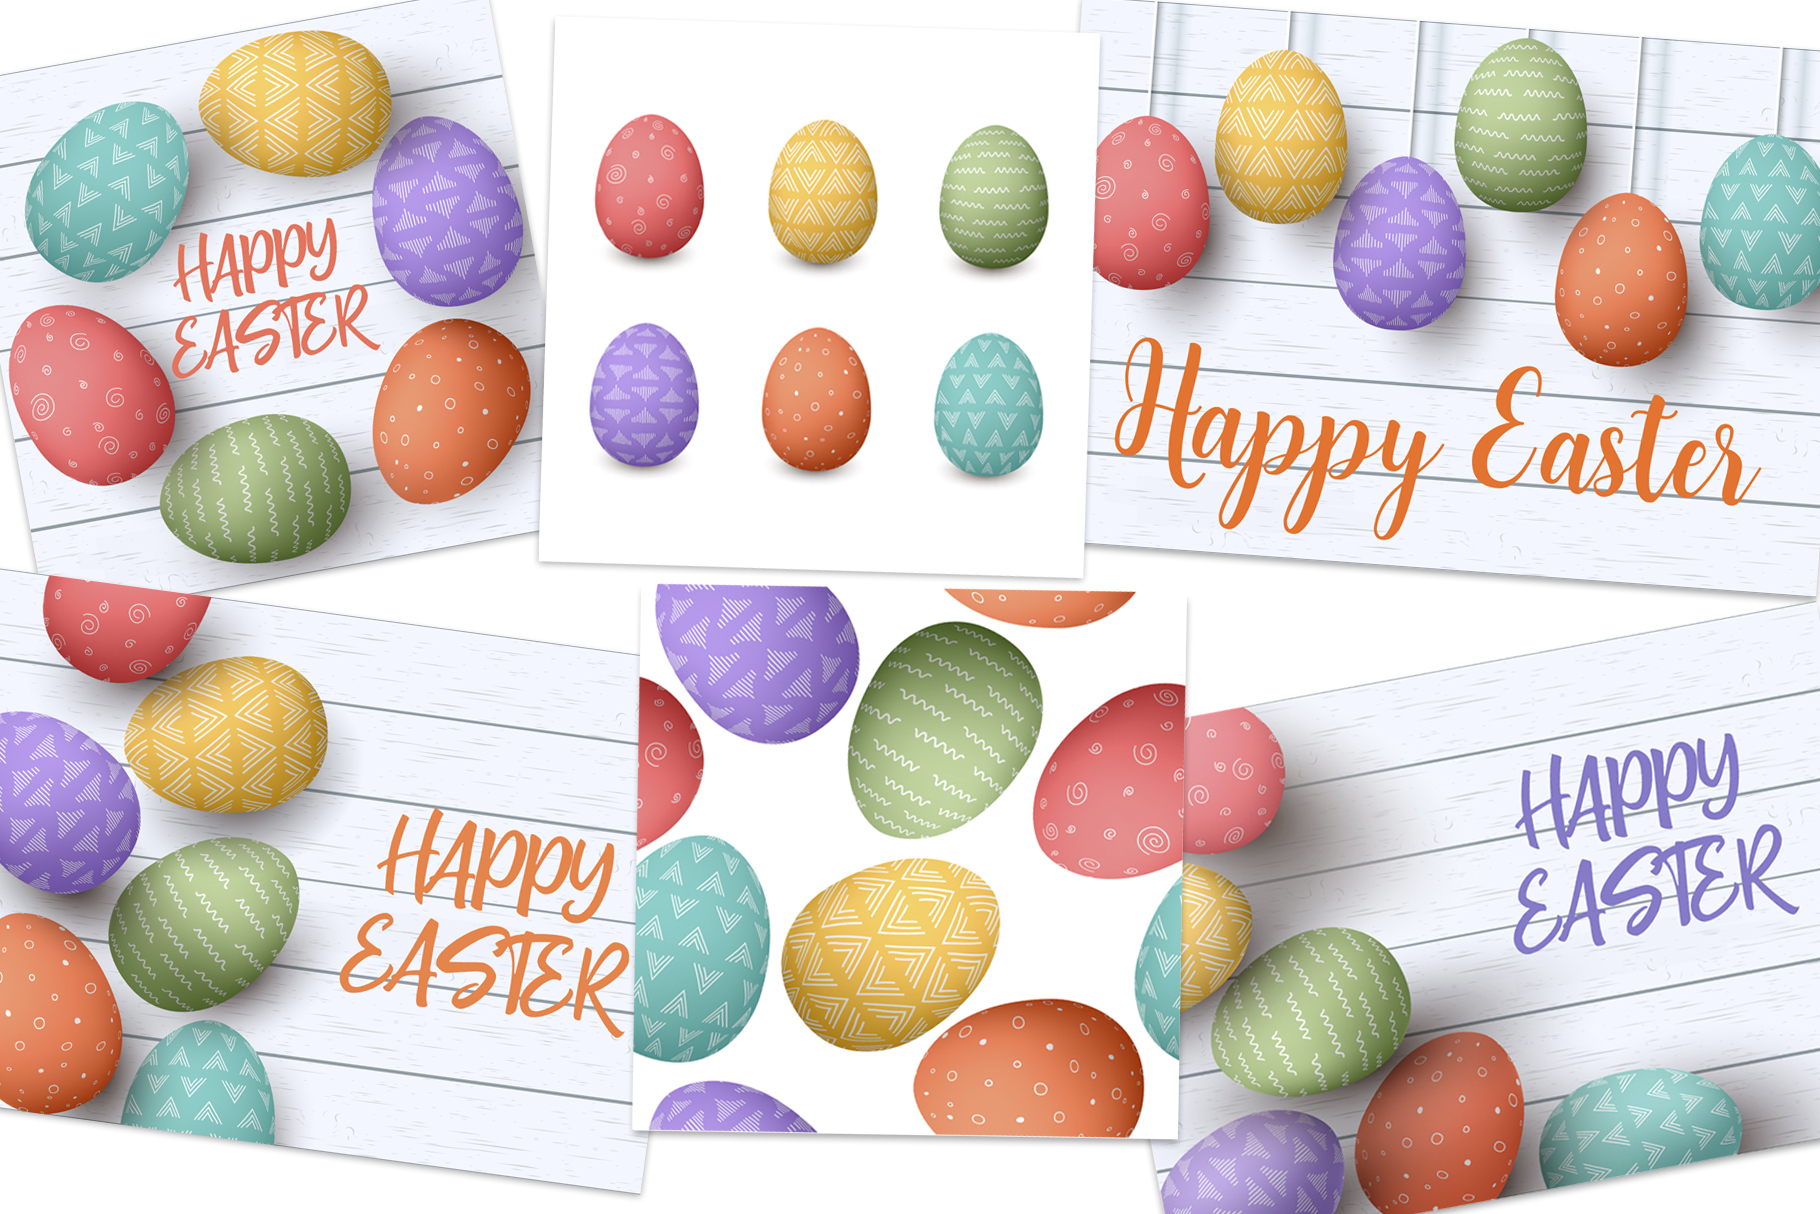 Happy Easter cards collection example image 2